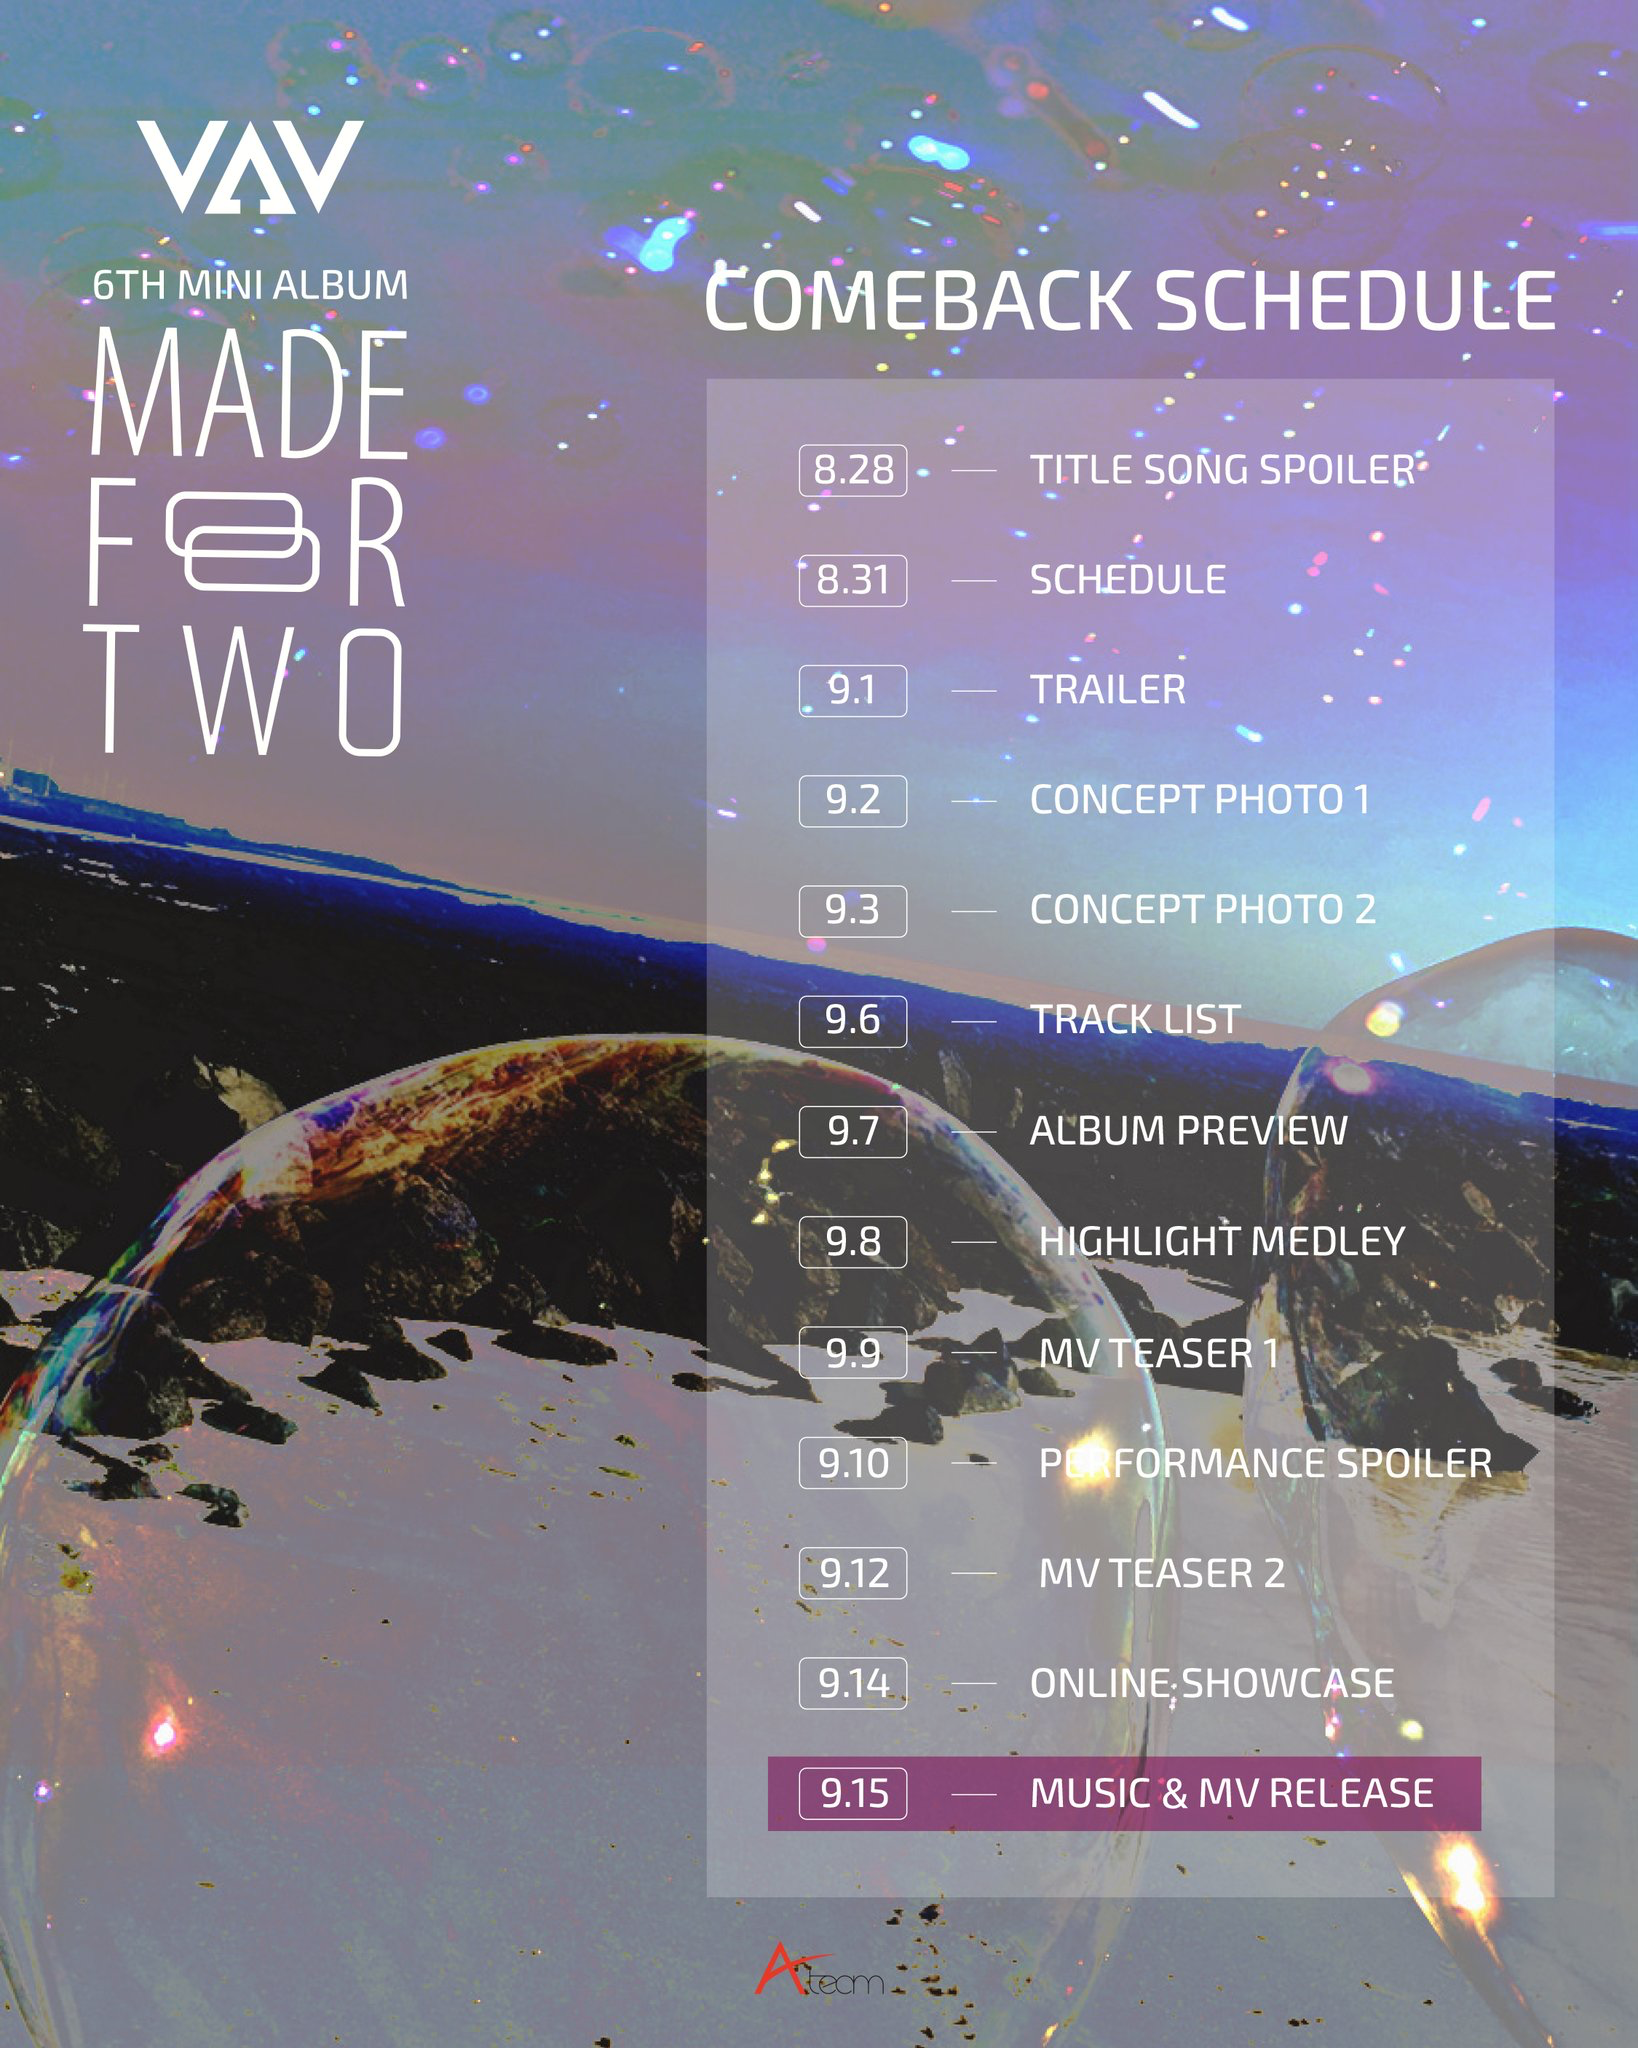 VAV Made For Two comeback schedule.png